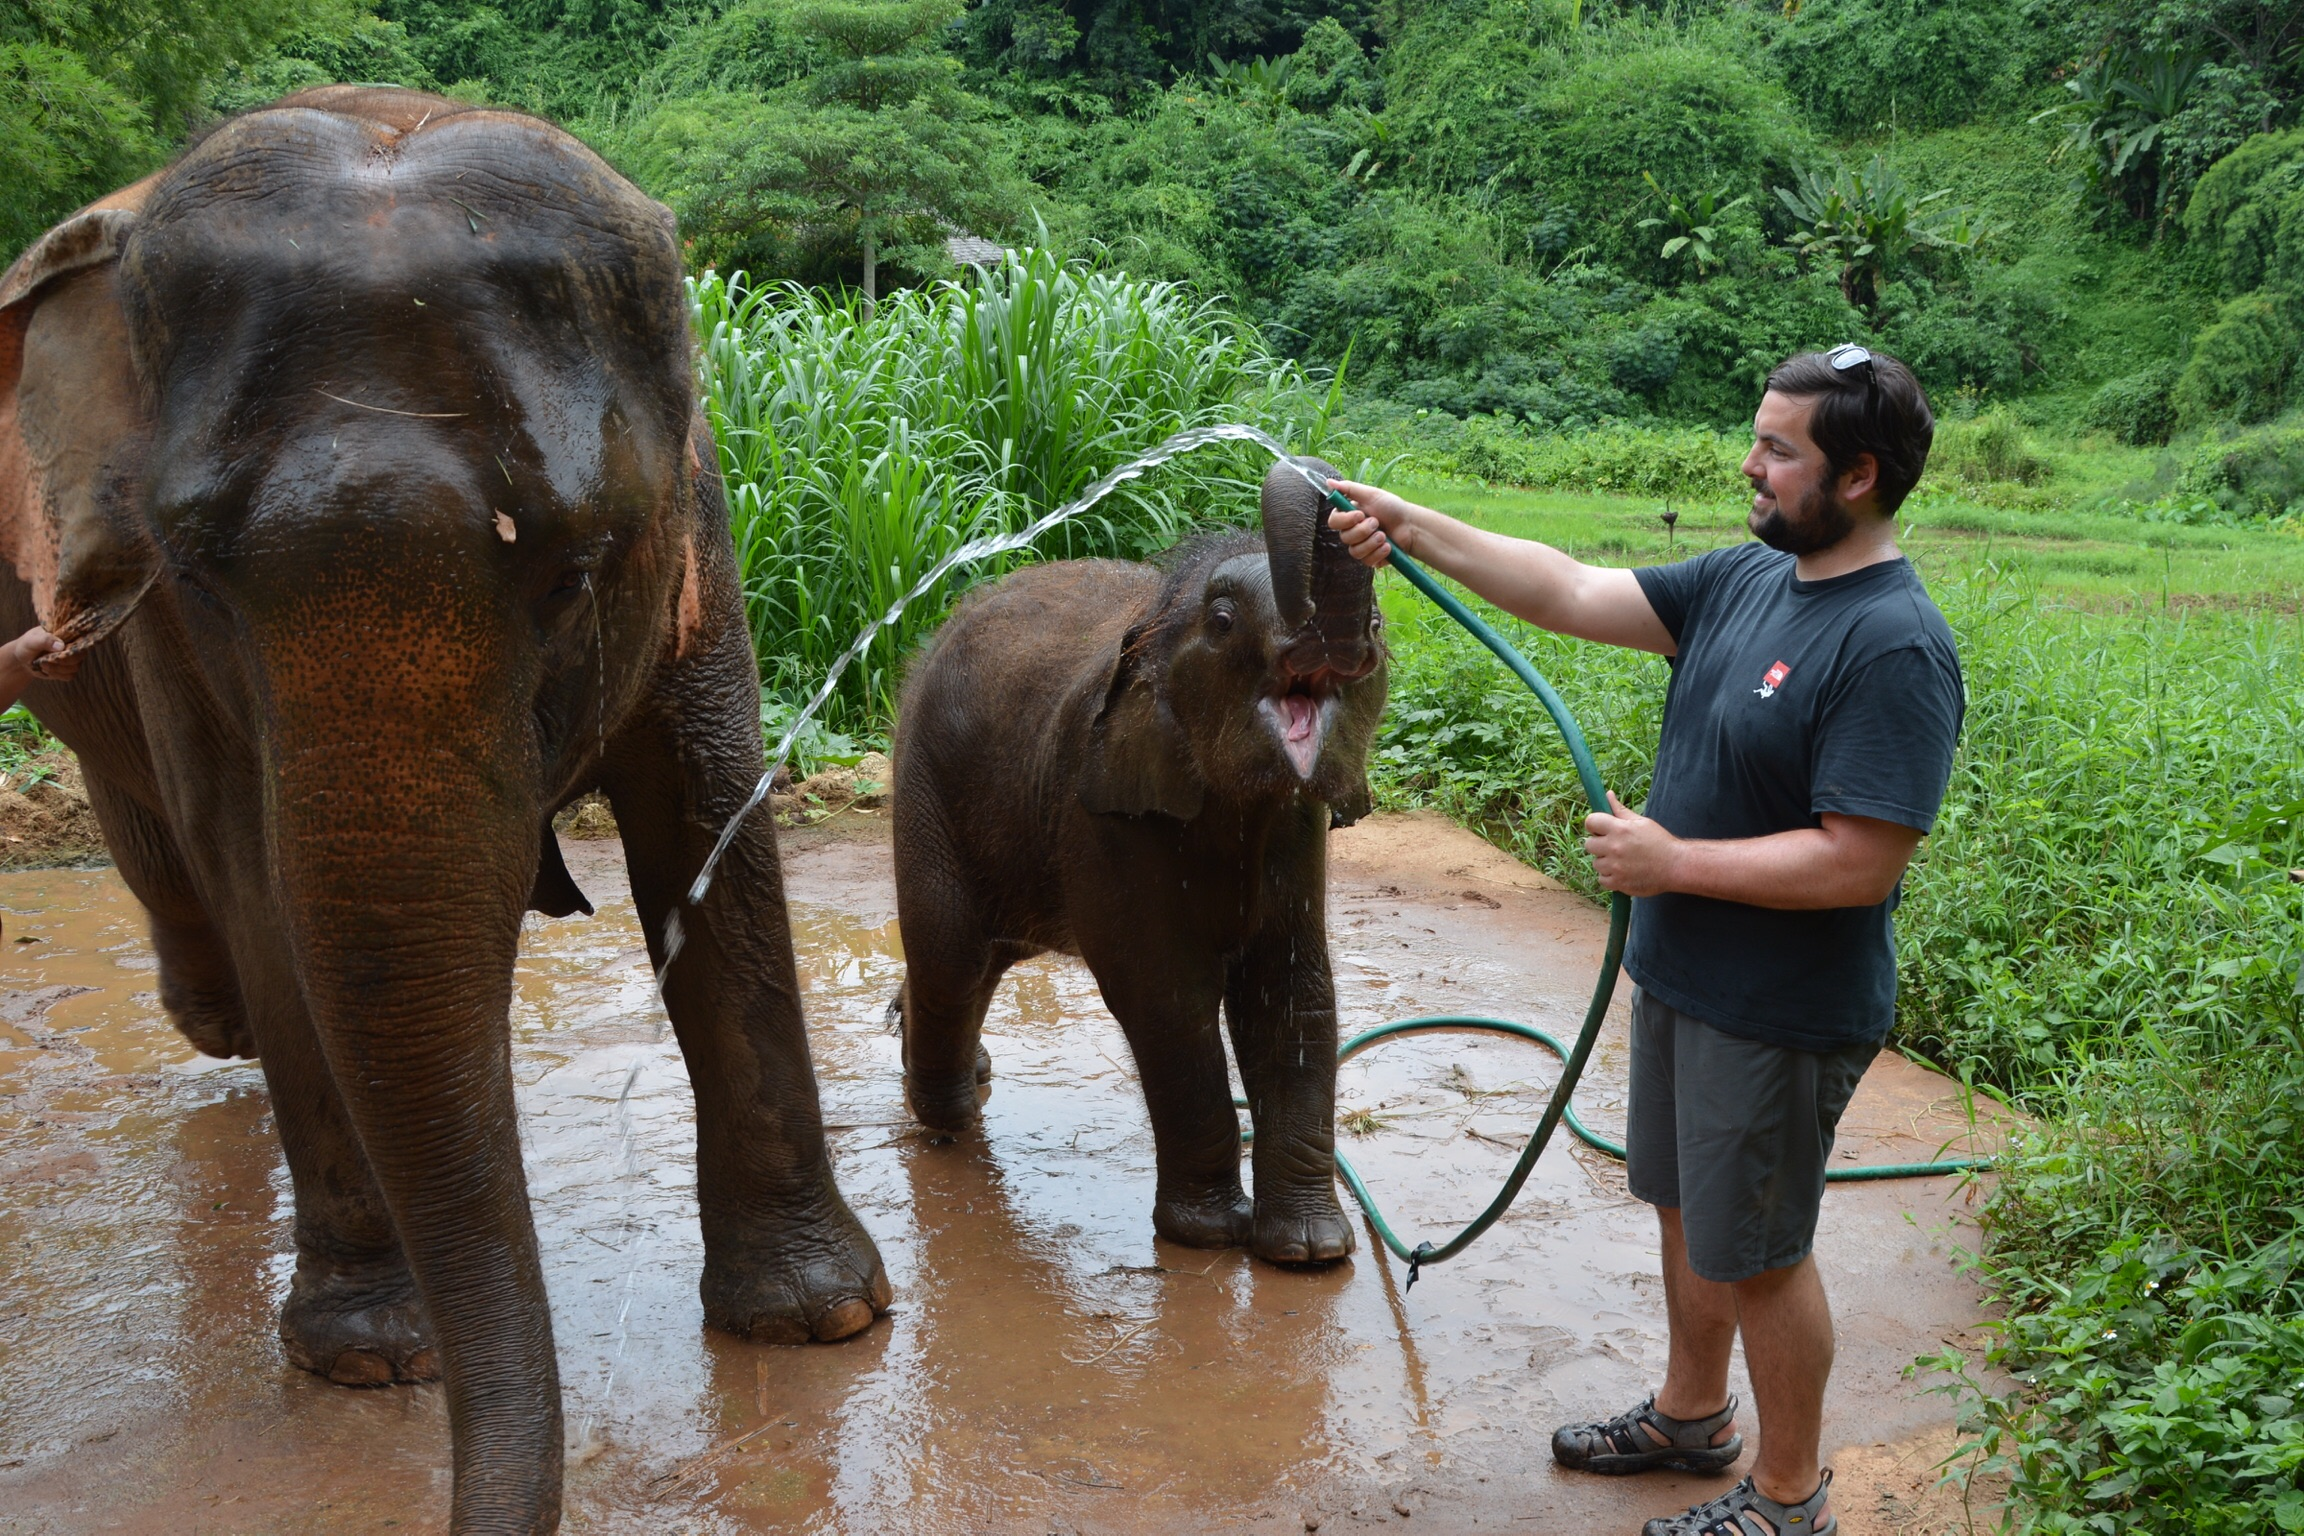 Cleaning up the elephants.